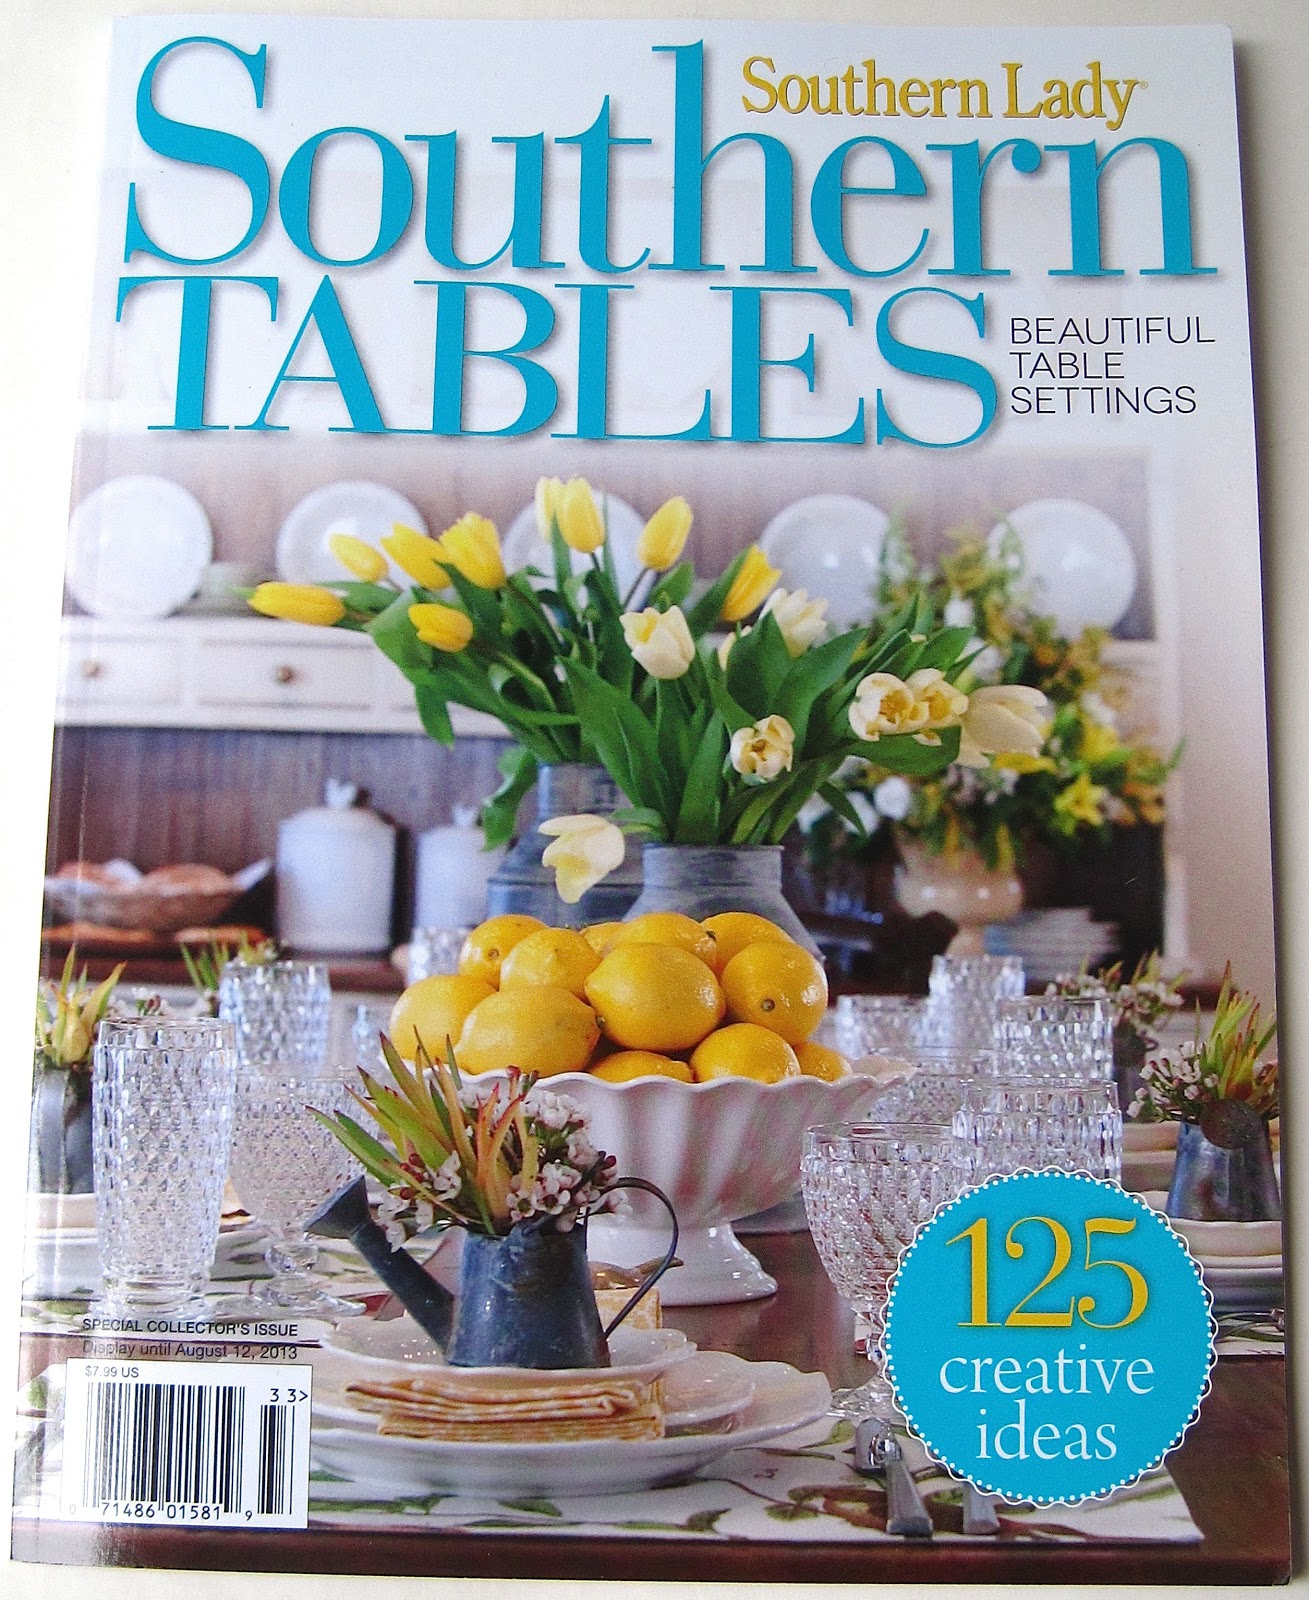 A carefully folded fabric napkin with silverware artfully tucked inside. Clear hobnail goblets standing next to a stack of crisp white plates. & Tea With Friends: Southern Tables by Southern Lady Magazine